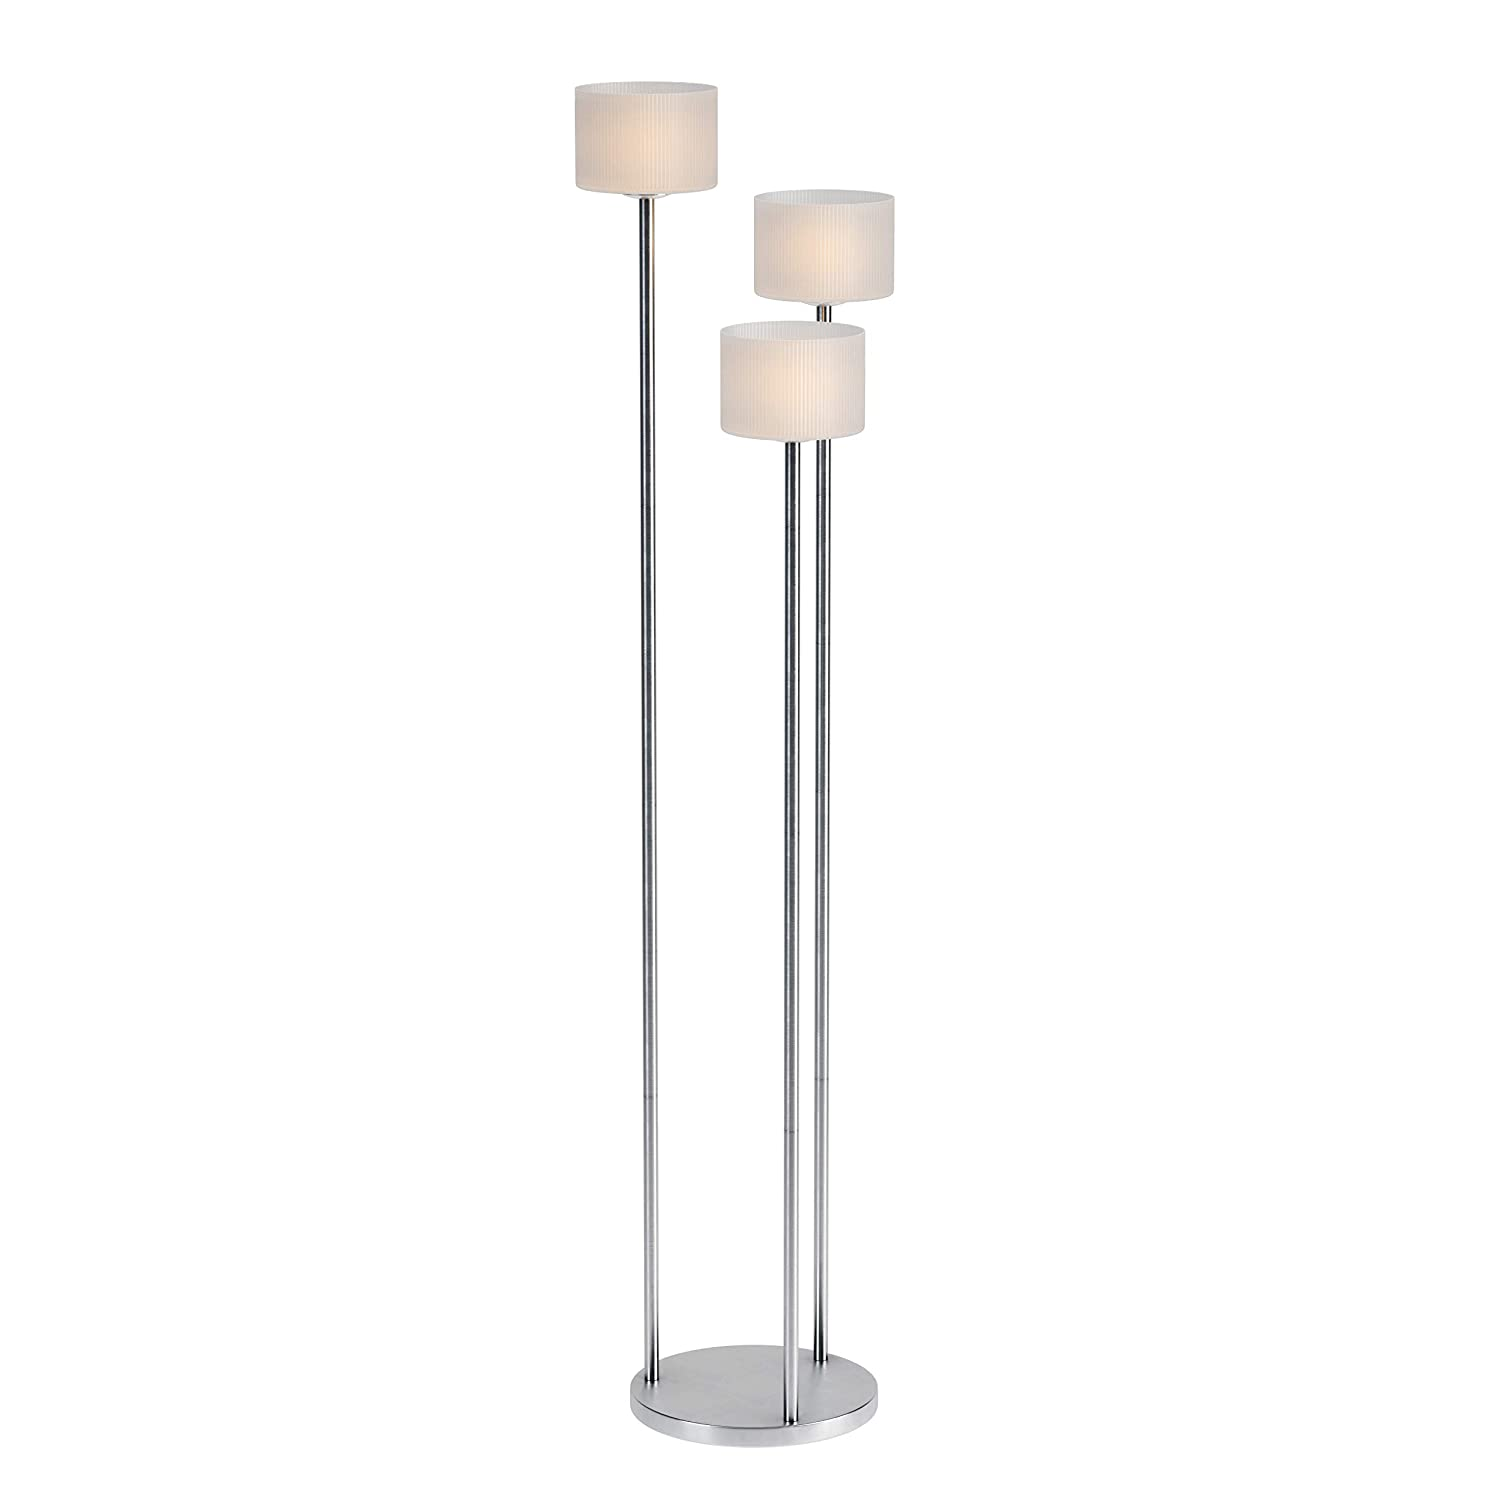 Kenroy Home 21377BS Matrielle 3-Light Torchiere Floor Lamp 72 Inch Height Brushed Steel Finish